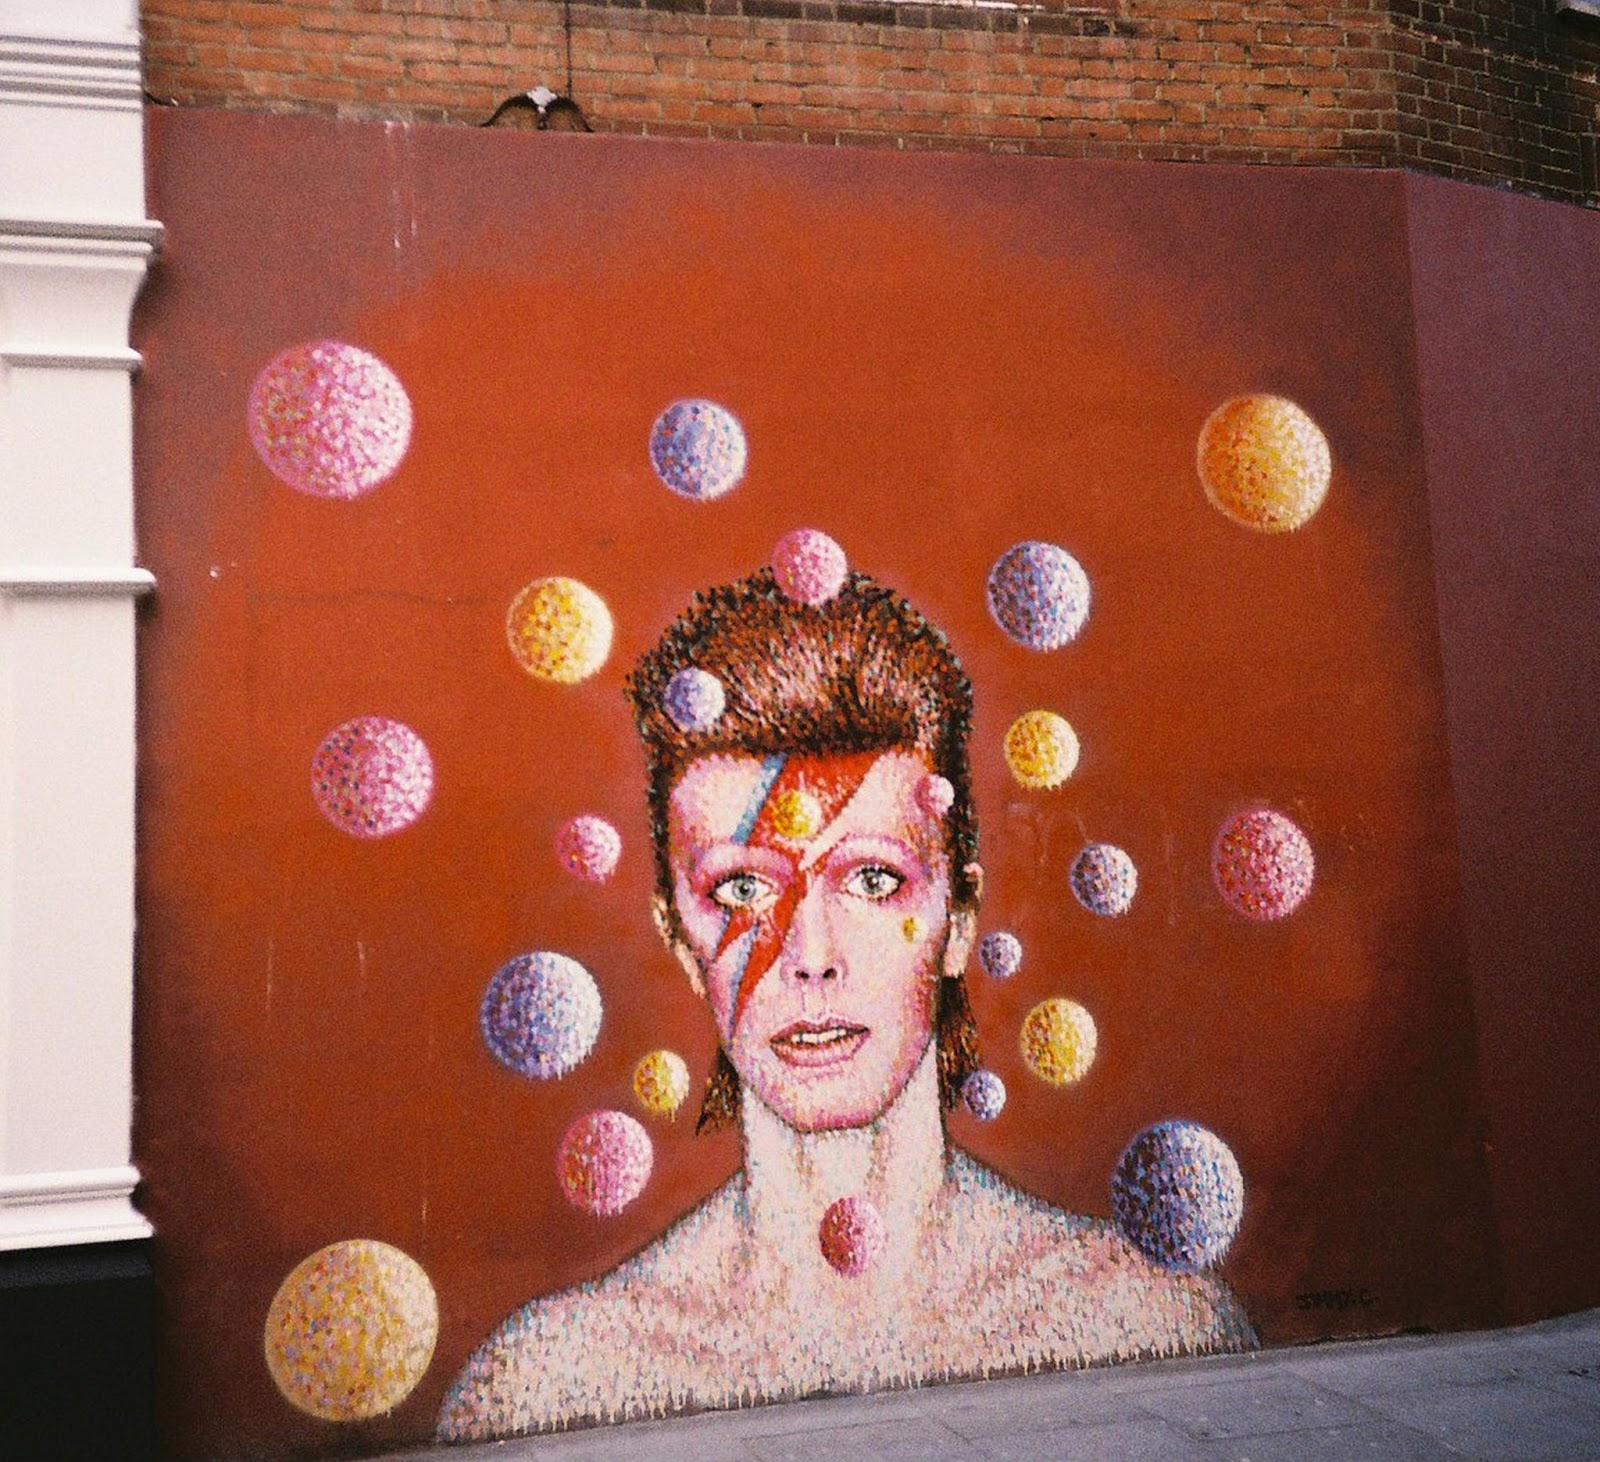 Musings about David Bowie and ELLS